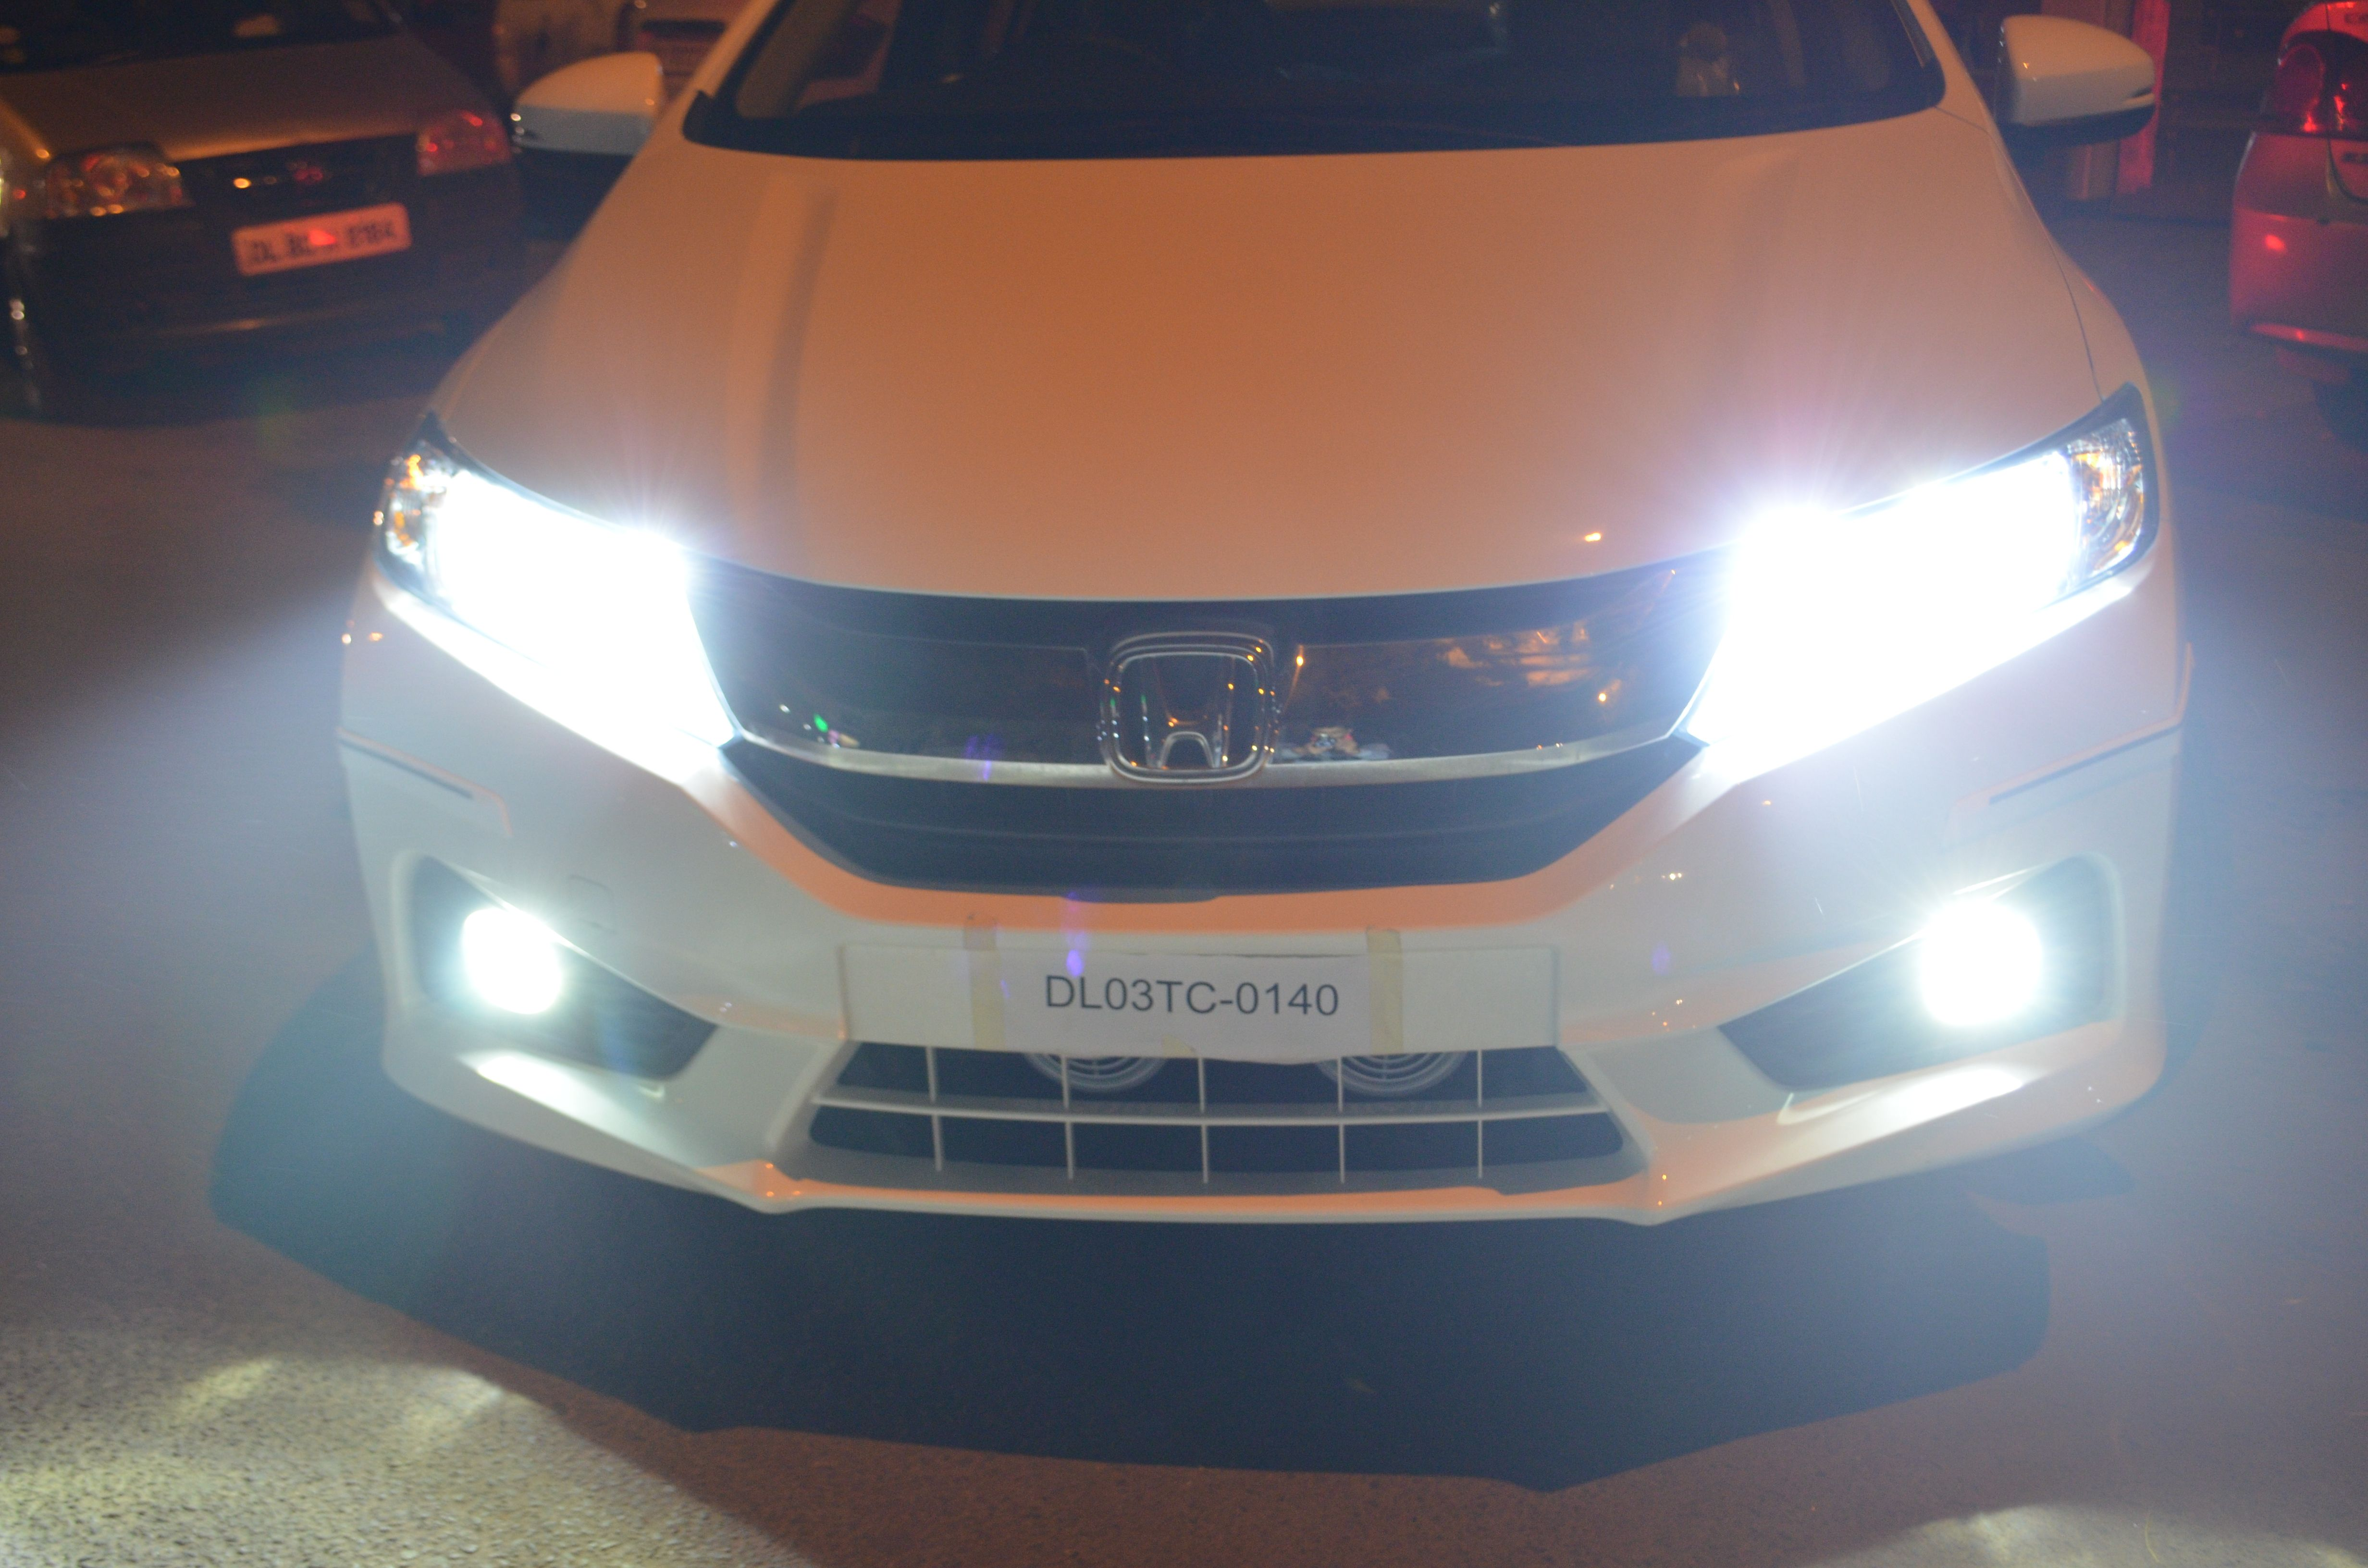 Kmh Car Cree Led Light 40 Watt 50 Watt Available Online At Best Price Only On Carplus Caraccessories Carlights Le Car Car Accessories Online Accessories